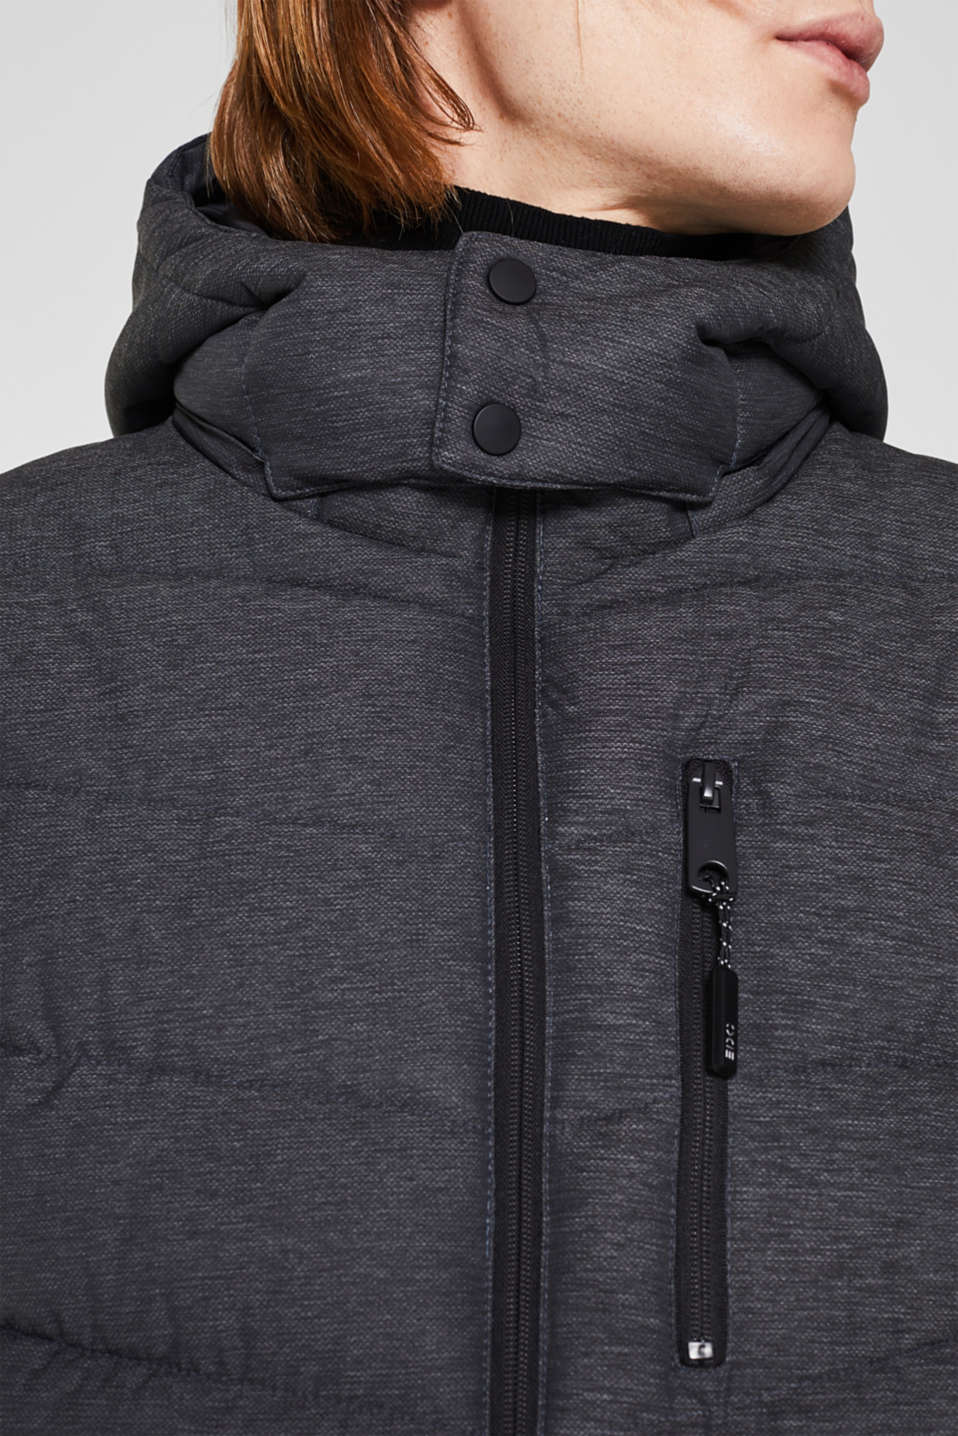 Quilted jacket with an adjustable hood, DARK GREY, detail image number 2